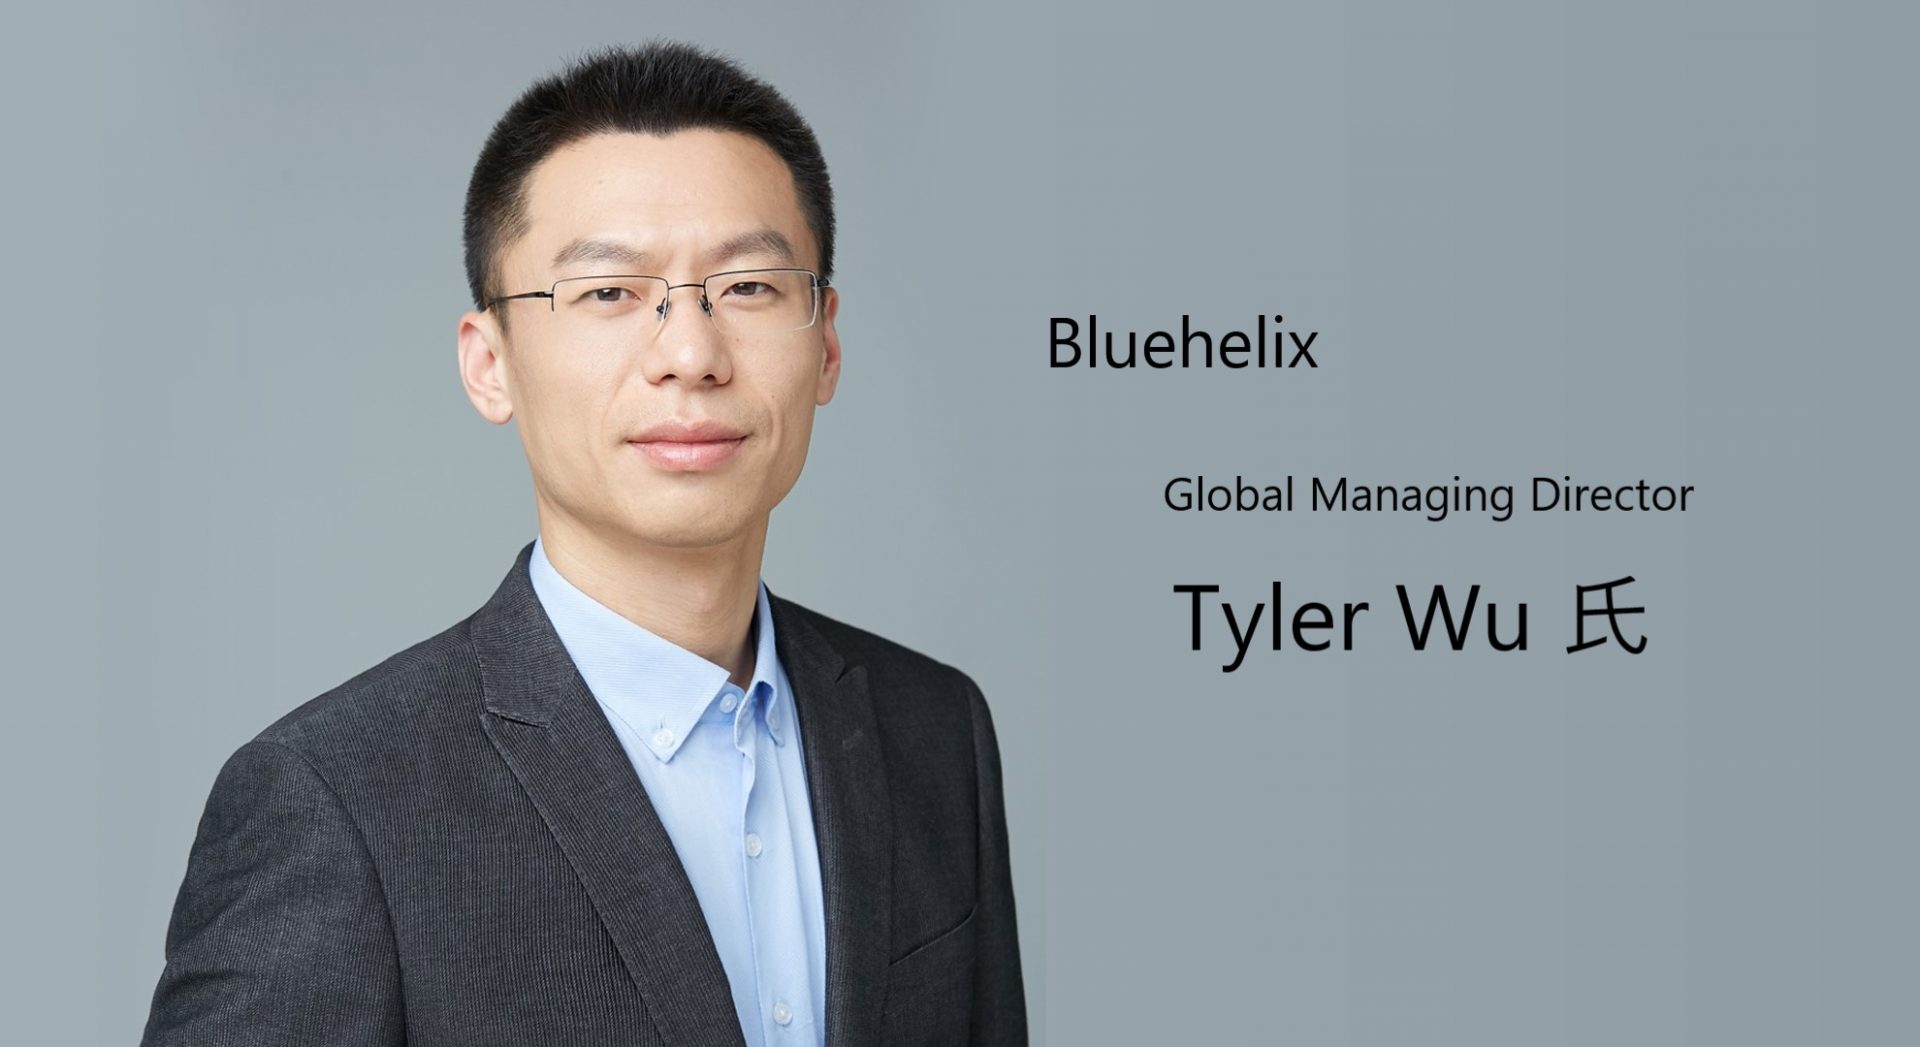 Bluhelix - Global Managing Director - Tyler Wu 氏